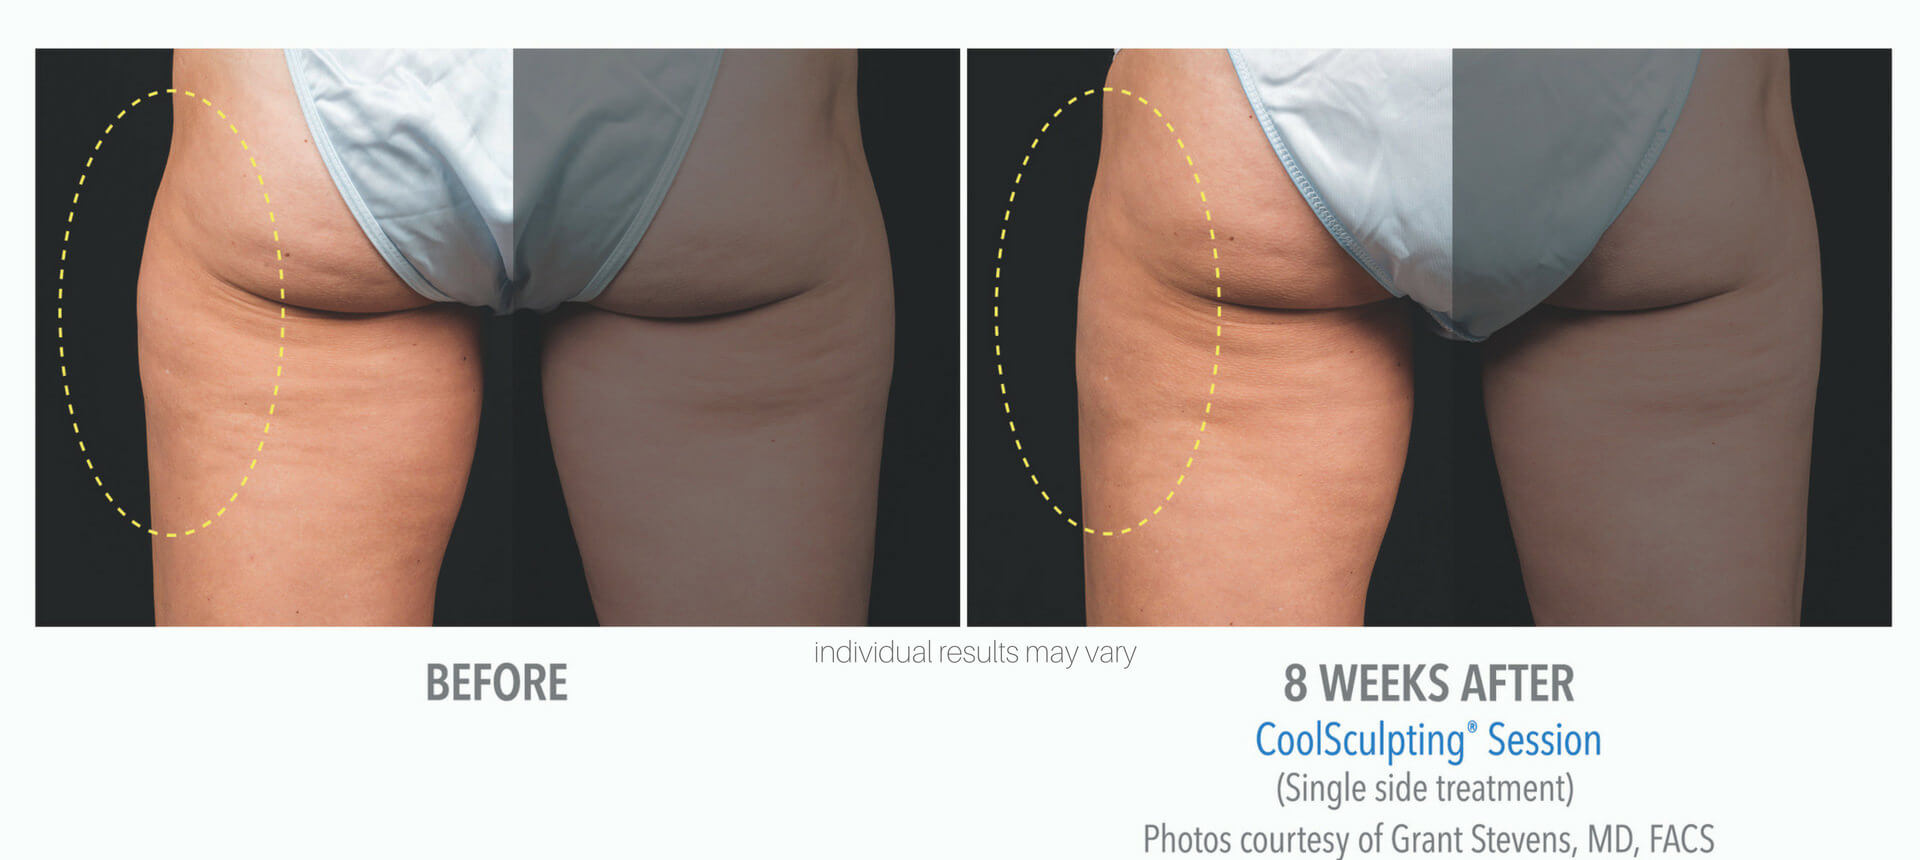 CoolSculpting Outer Thighs 8 Weeks Later